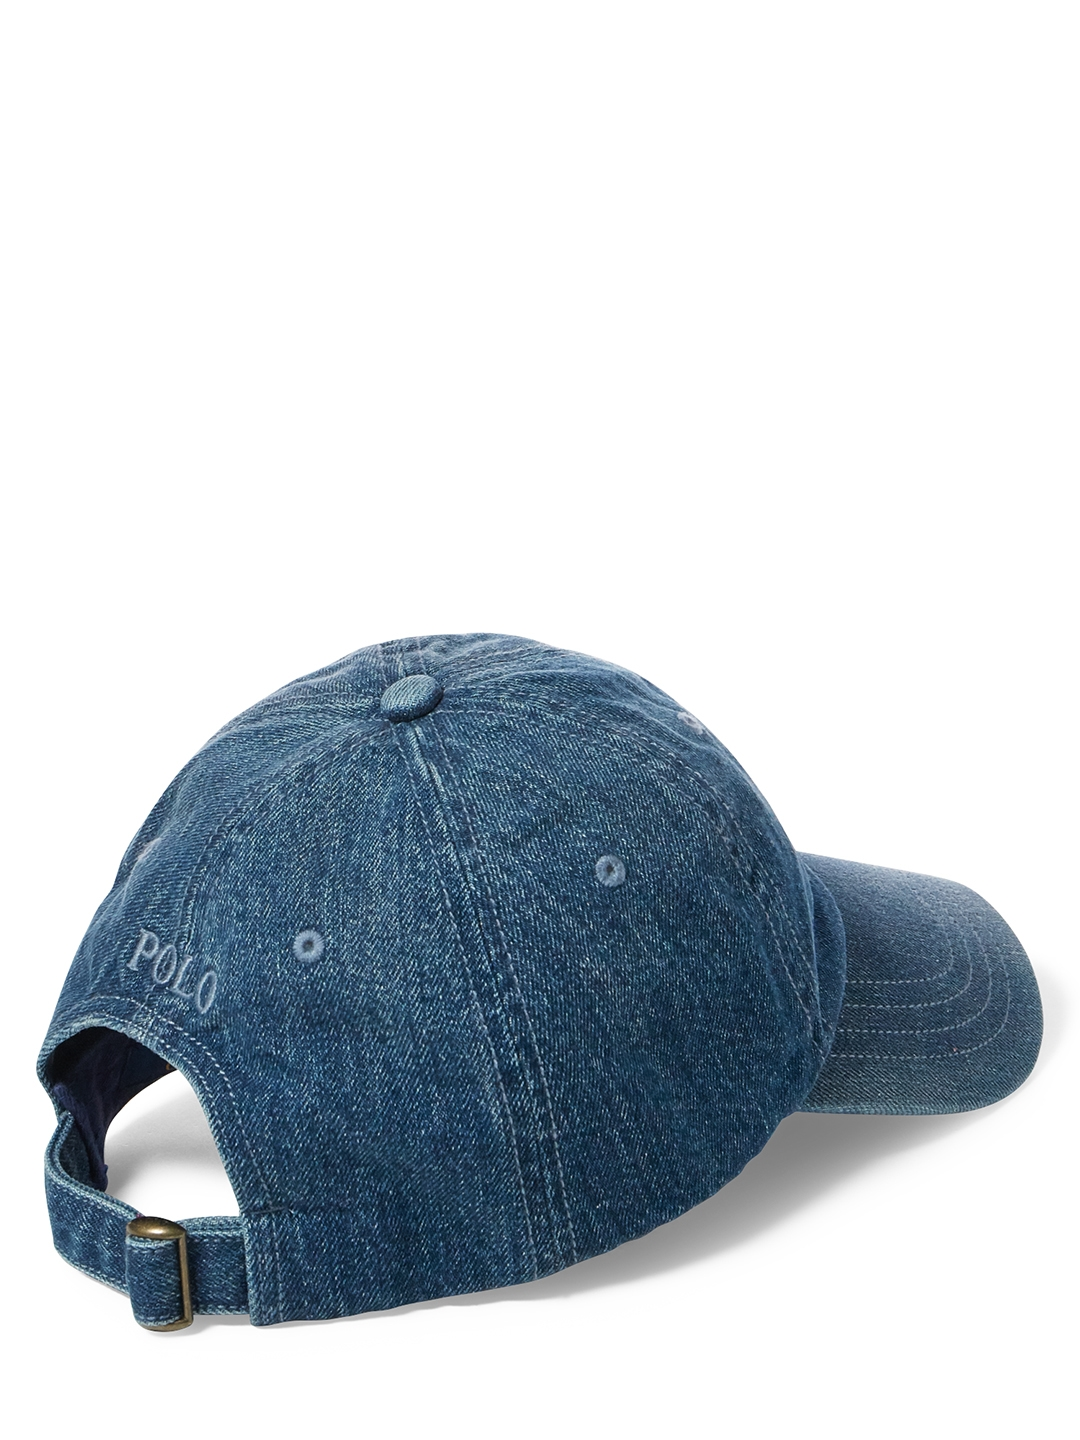 Buy Polo Ralph Lauren Cotton Chino Baseball Cap - Caps for Men ... a0a03e4c99e